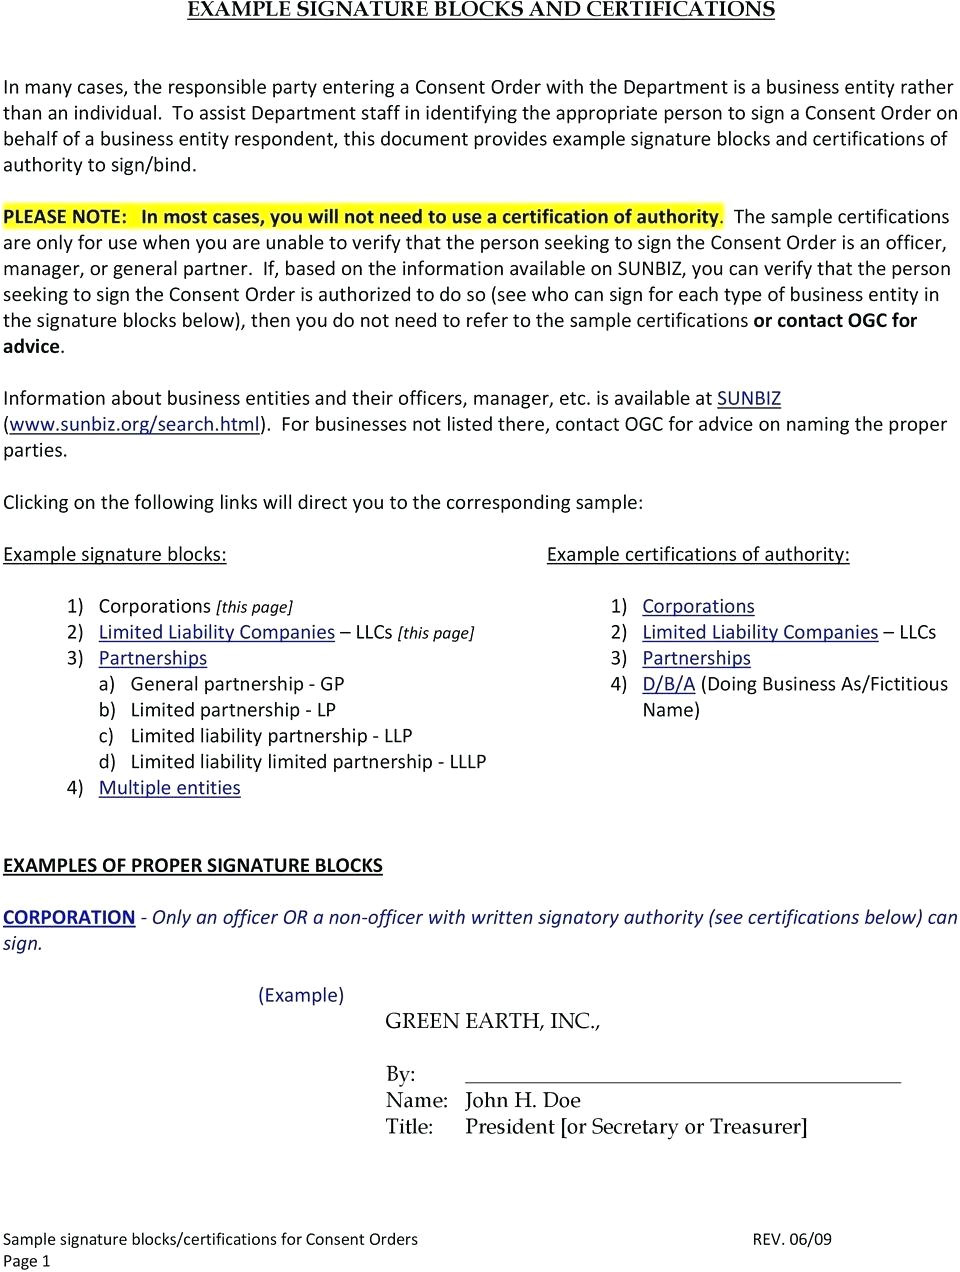 corporate resolution authorized signers template